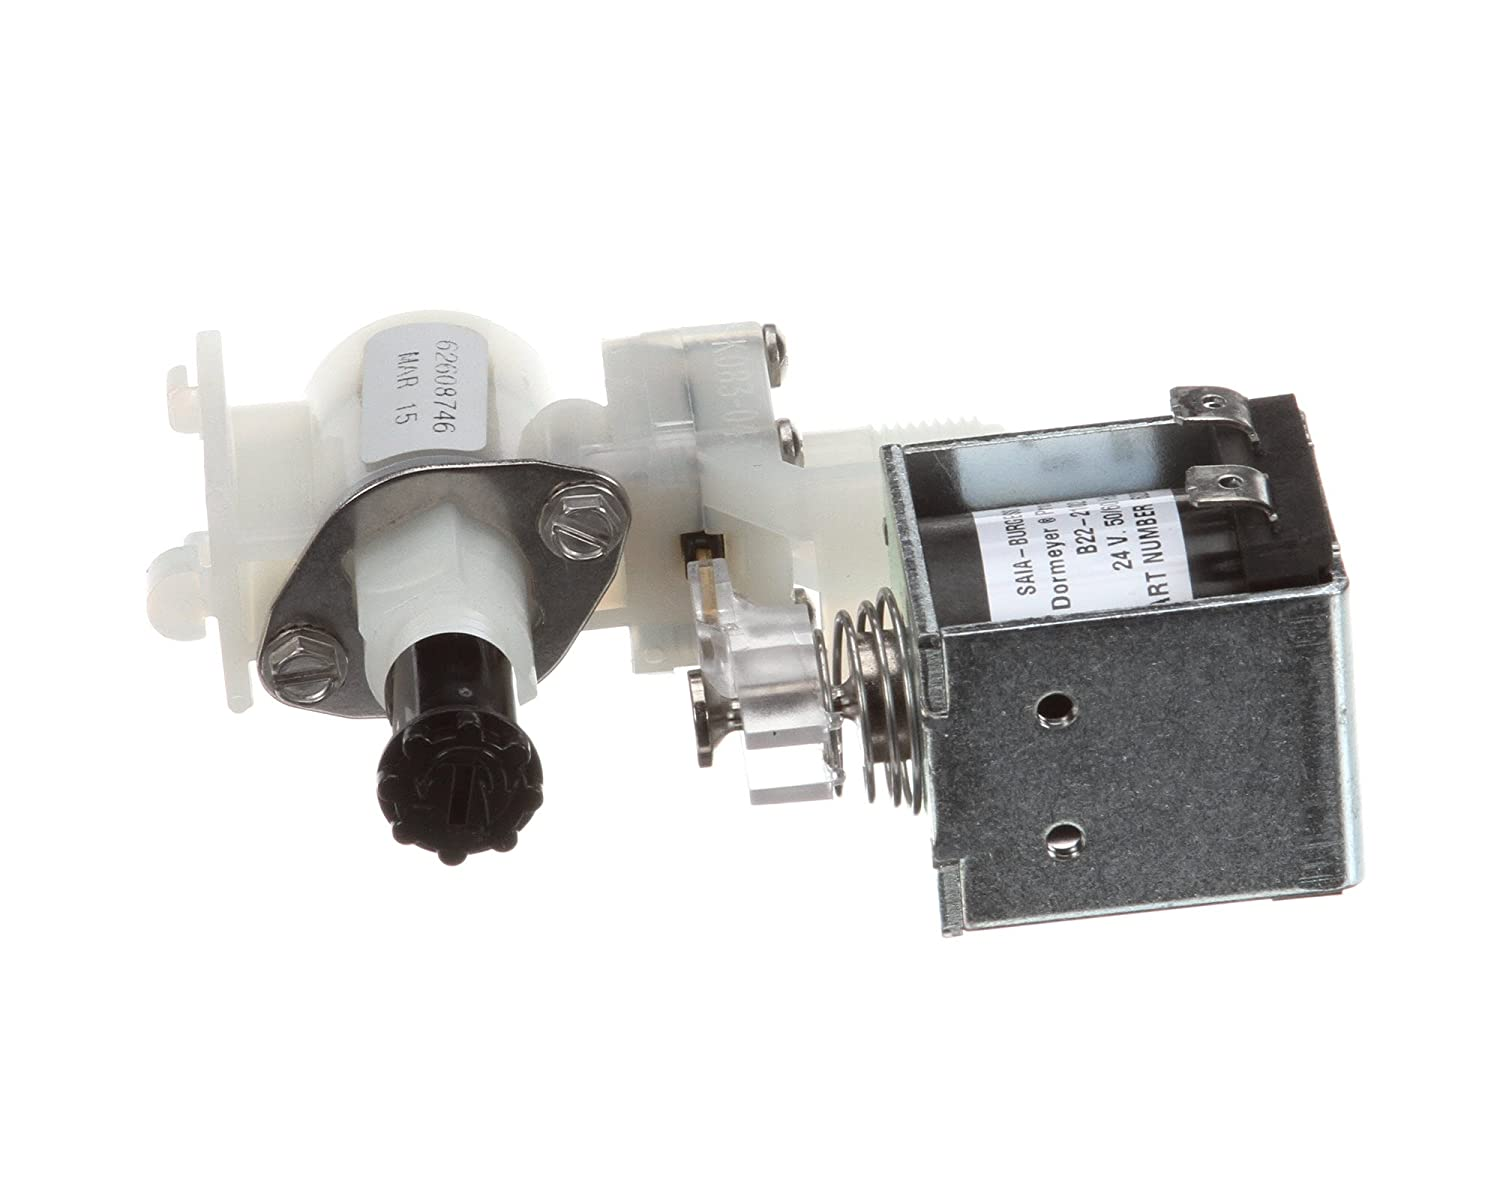 Cornelius 1037874 Max depot 65% OFF Syrup Solenoid Assembly Gpm Val 0.21